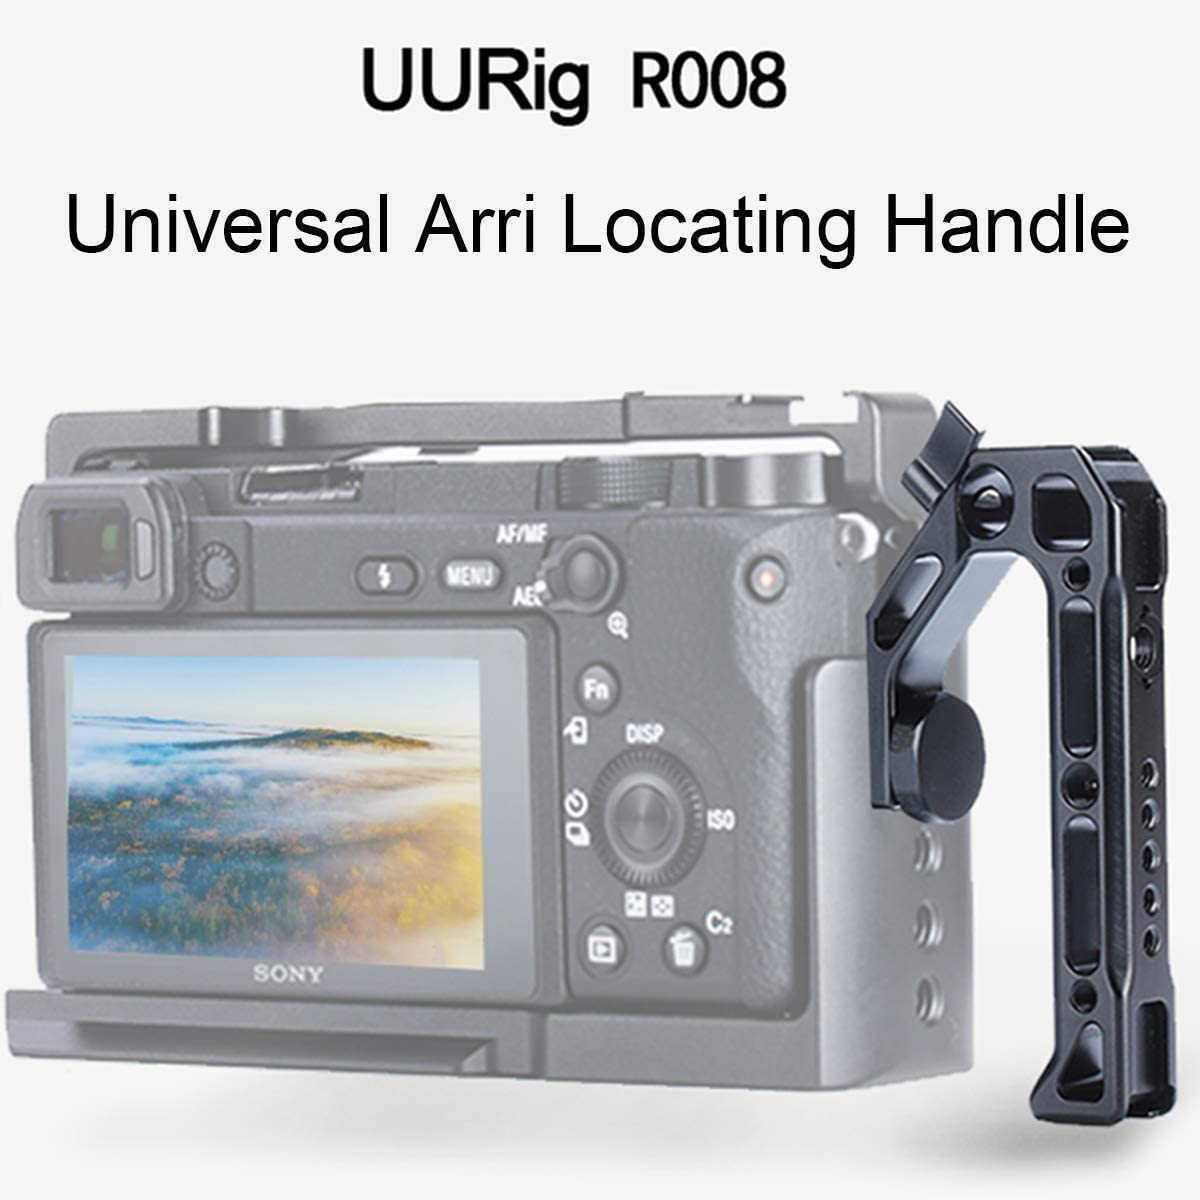 Arri Locating Hole Handheld Video Metal Cage Kit with Top Handle Grip for Sony A6400 A6300 A6100 Professional Microphone//Video Light Extension Mounting W Cold Shoe Video Vlog Film Making